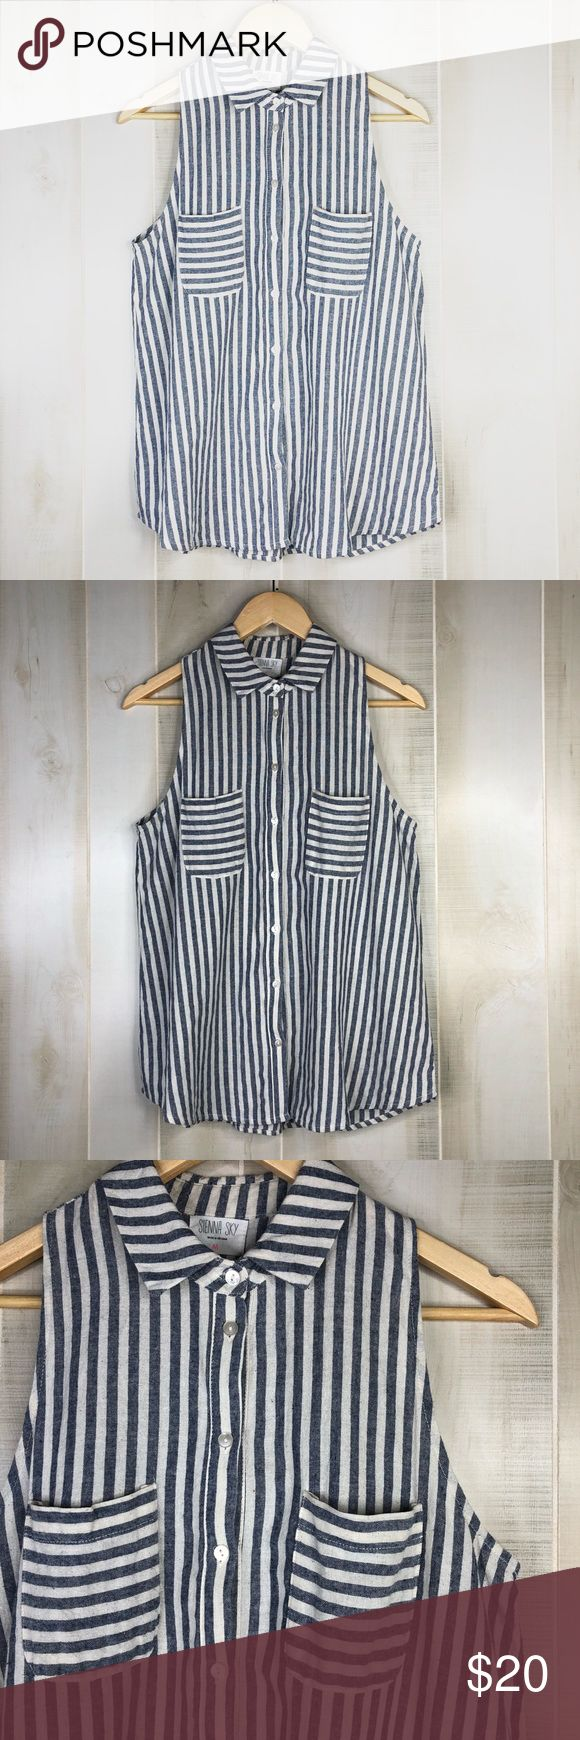 """Sienna Sky Button down Striped Sleeveless Shirt Excellent condition. Sienna Sky Button down Striped Sleeveless Shirt. Size M. Light blue and white color.  -Pit to pit 18"""" -Length 27""""  Two front pocket styling  You can wear this cute top with a pair of white jeans or skirt with some flats or some cute espadrilles.  #T0302SIENNASKYM Sienna Sky Tops Button Down Shirts"""